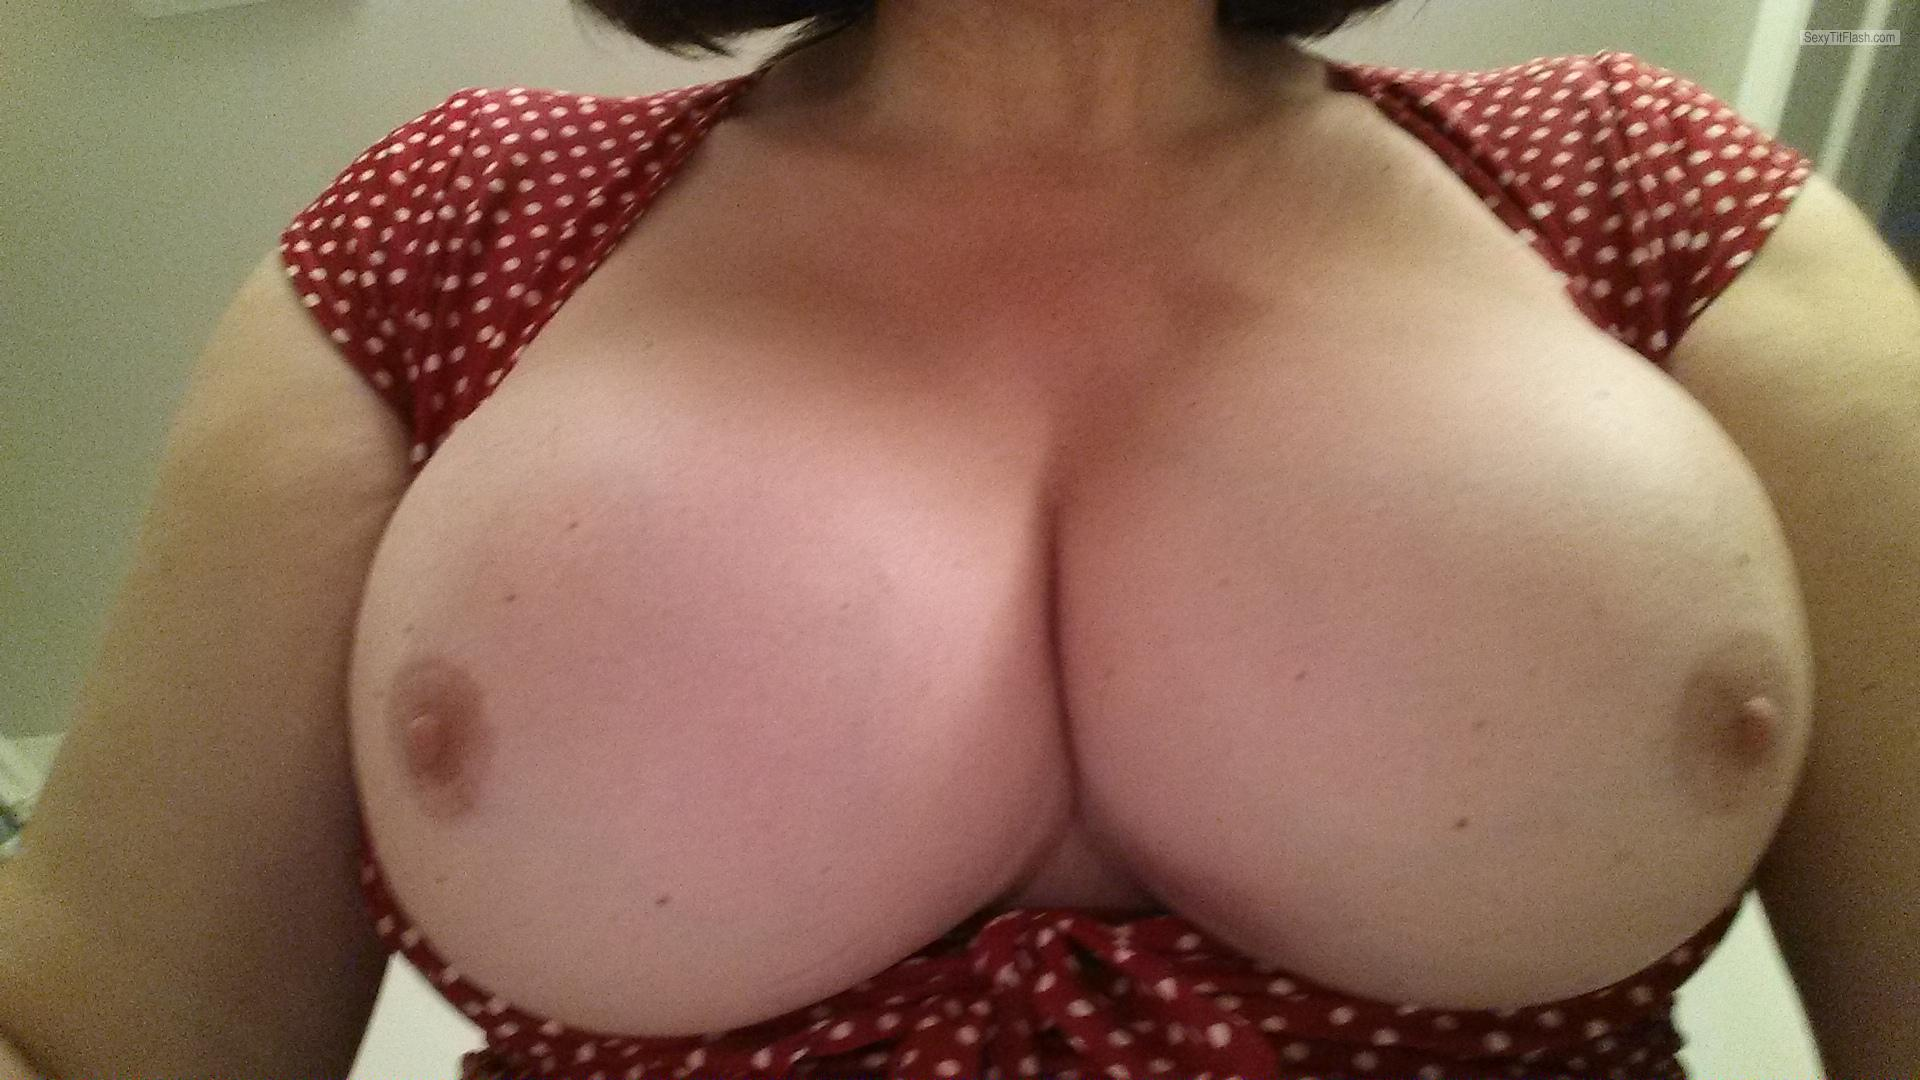 My Big Tits Selfie by Sammi